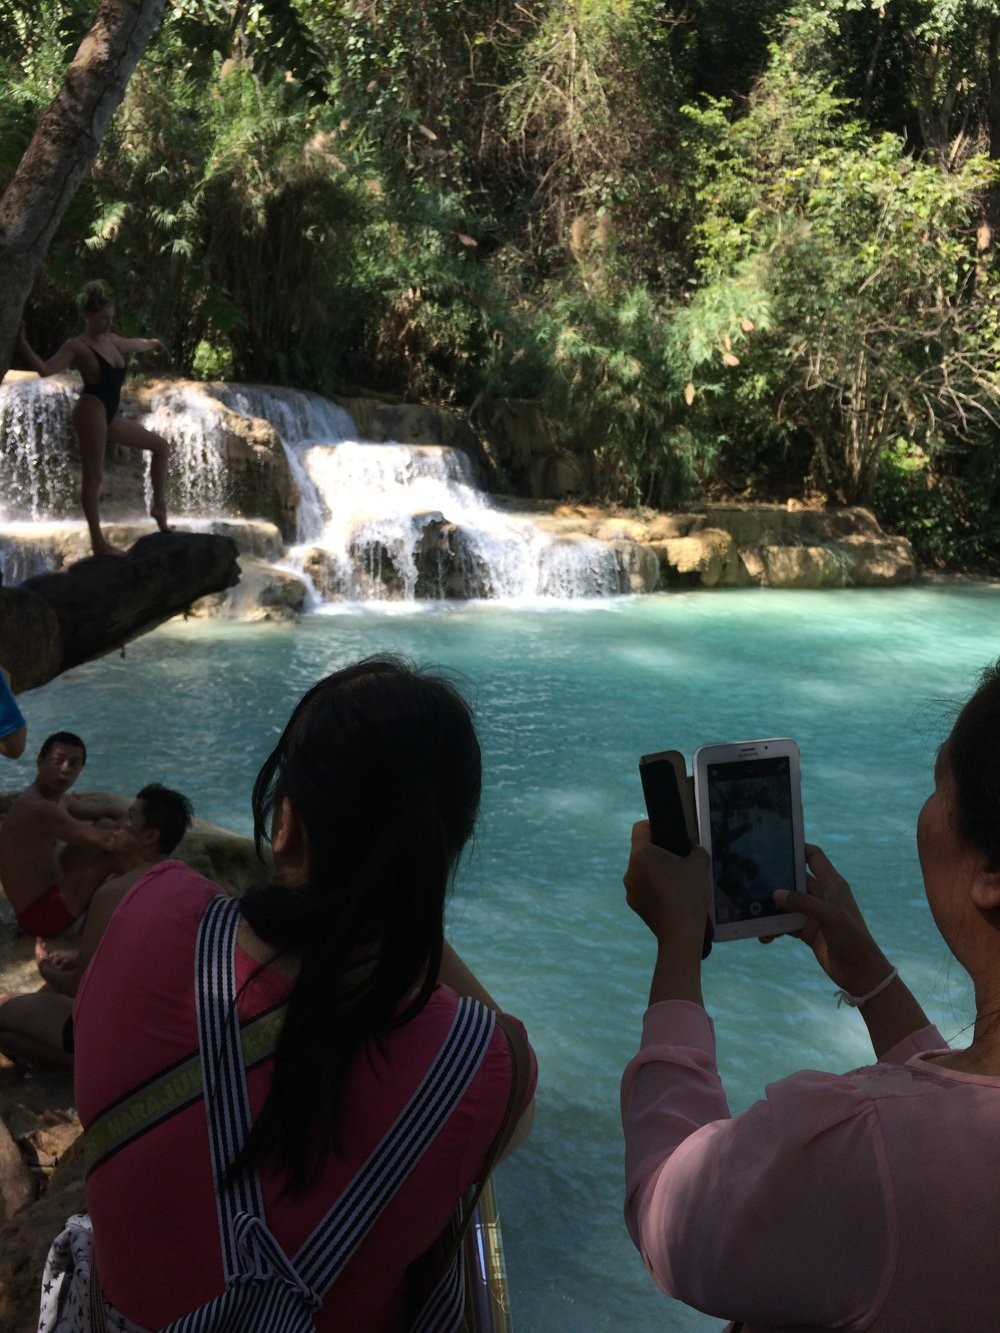 These Chinese tourists came to take pictures of american girls modeling, and there happens to be a waterfall in the background too. Kuang Si Waterfall, Loas.